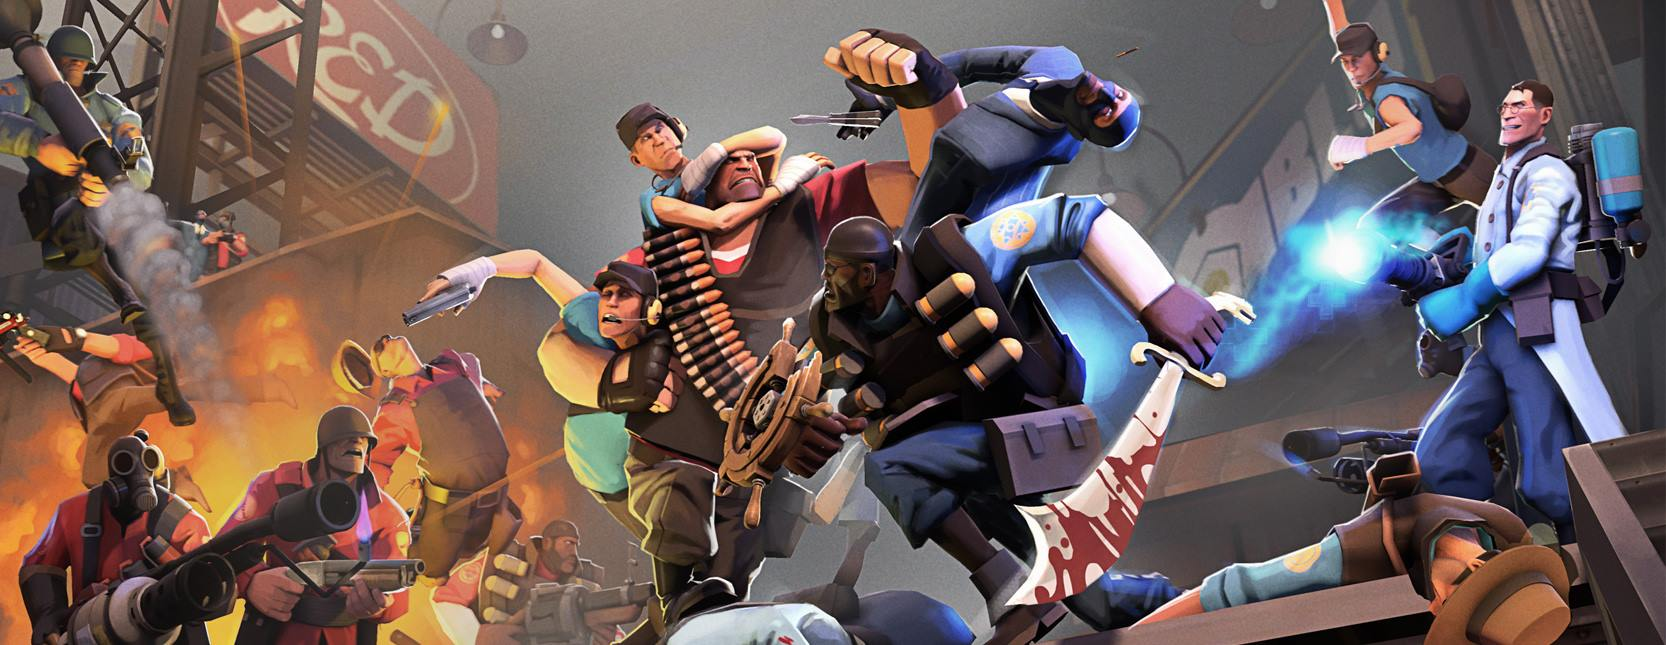 how to fix Team Fortress 2 not launching